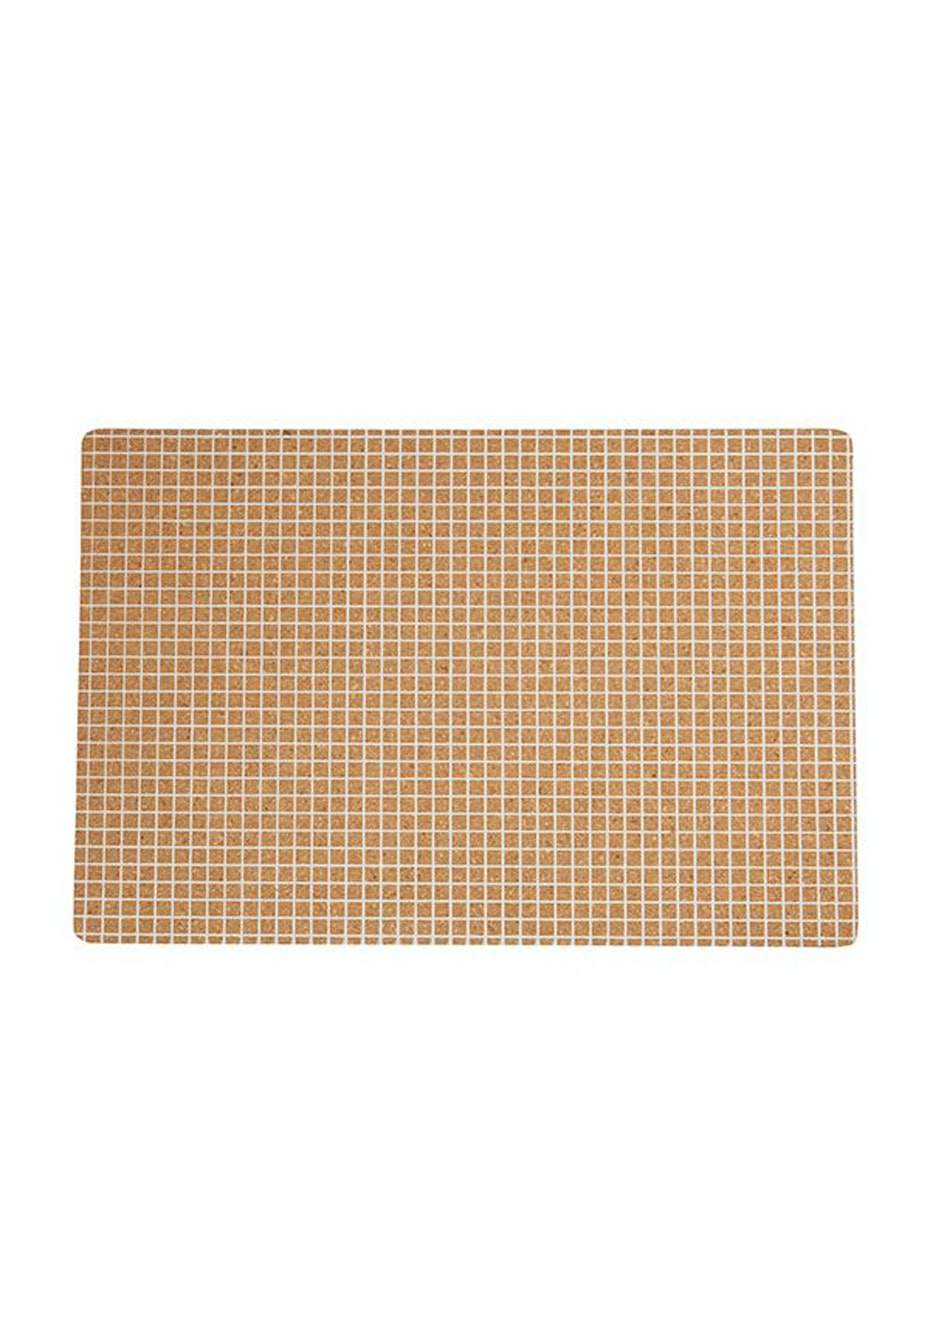 General Eclectic - Cork Placemat White Grid Set4